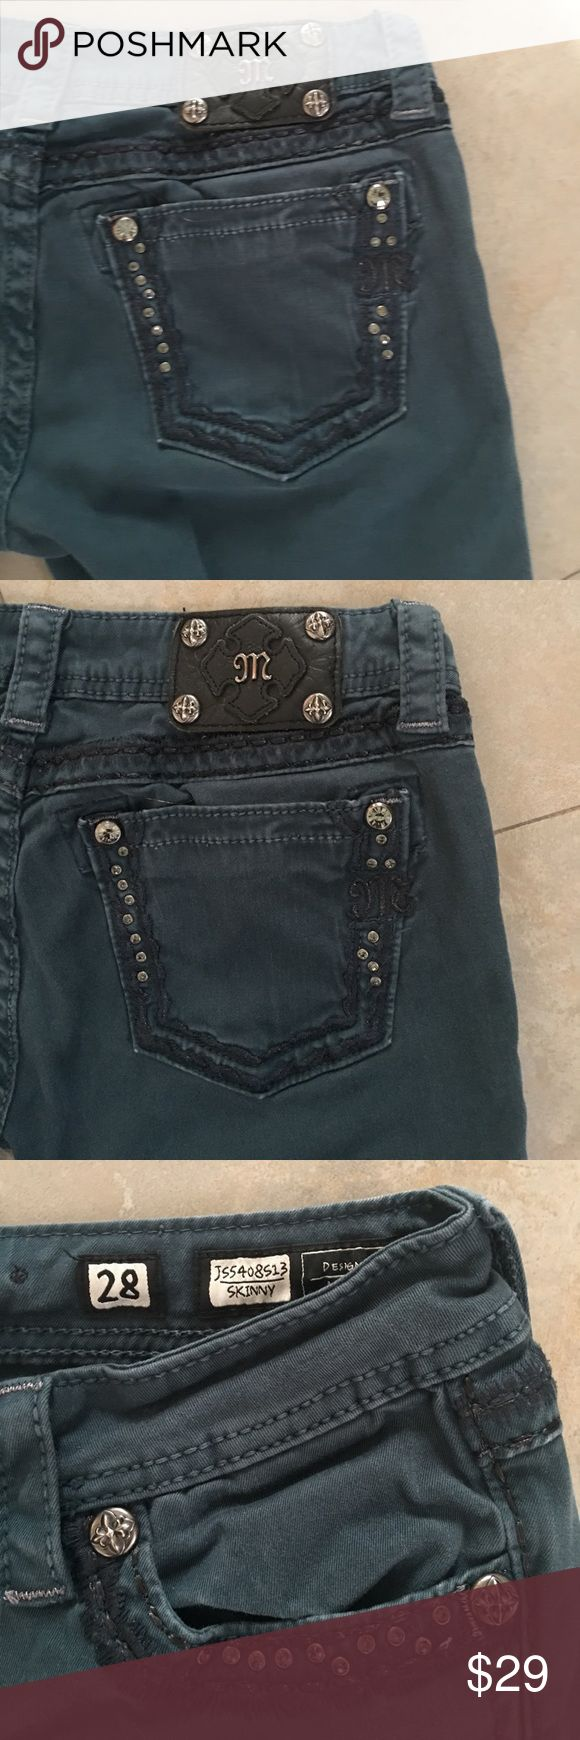 """MISS ME SKINNY JEANS MISS ME SKINNY JEANS.  No Rips, stains or Marks. Color is OK Teal.  Black stitched fringe design on both front pockets, and designs on both Back pockets. Worn but in great condition. Price reflects, Refer to pics.  Questions Welcomed. Size 28 Inseam 32"""" Miss Me Jeans Skinny"""